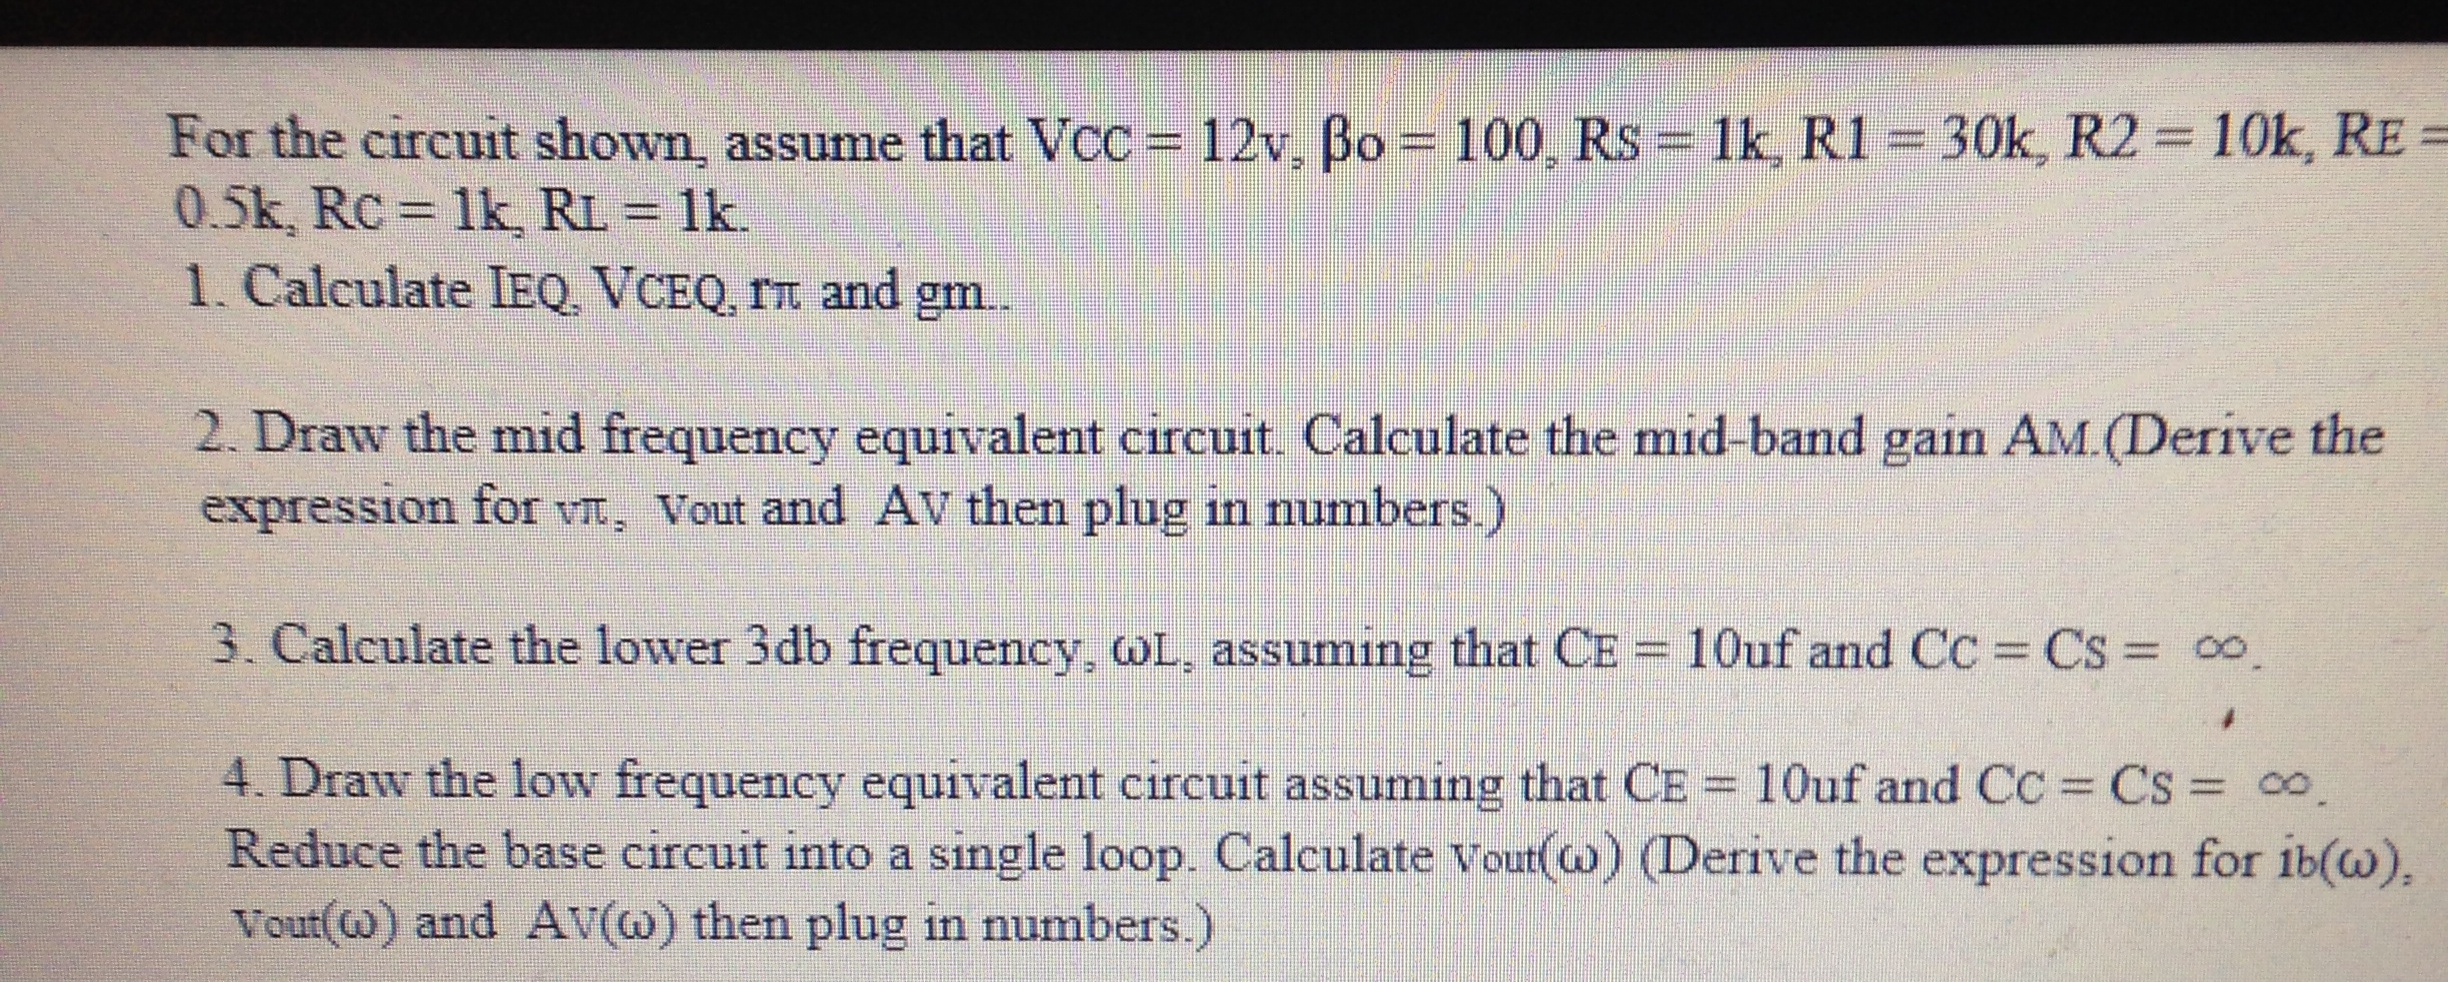 For the circuit shown, assume that Vcc = 12v, be